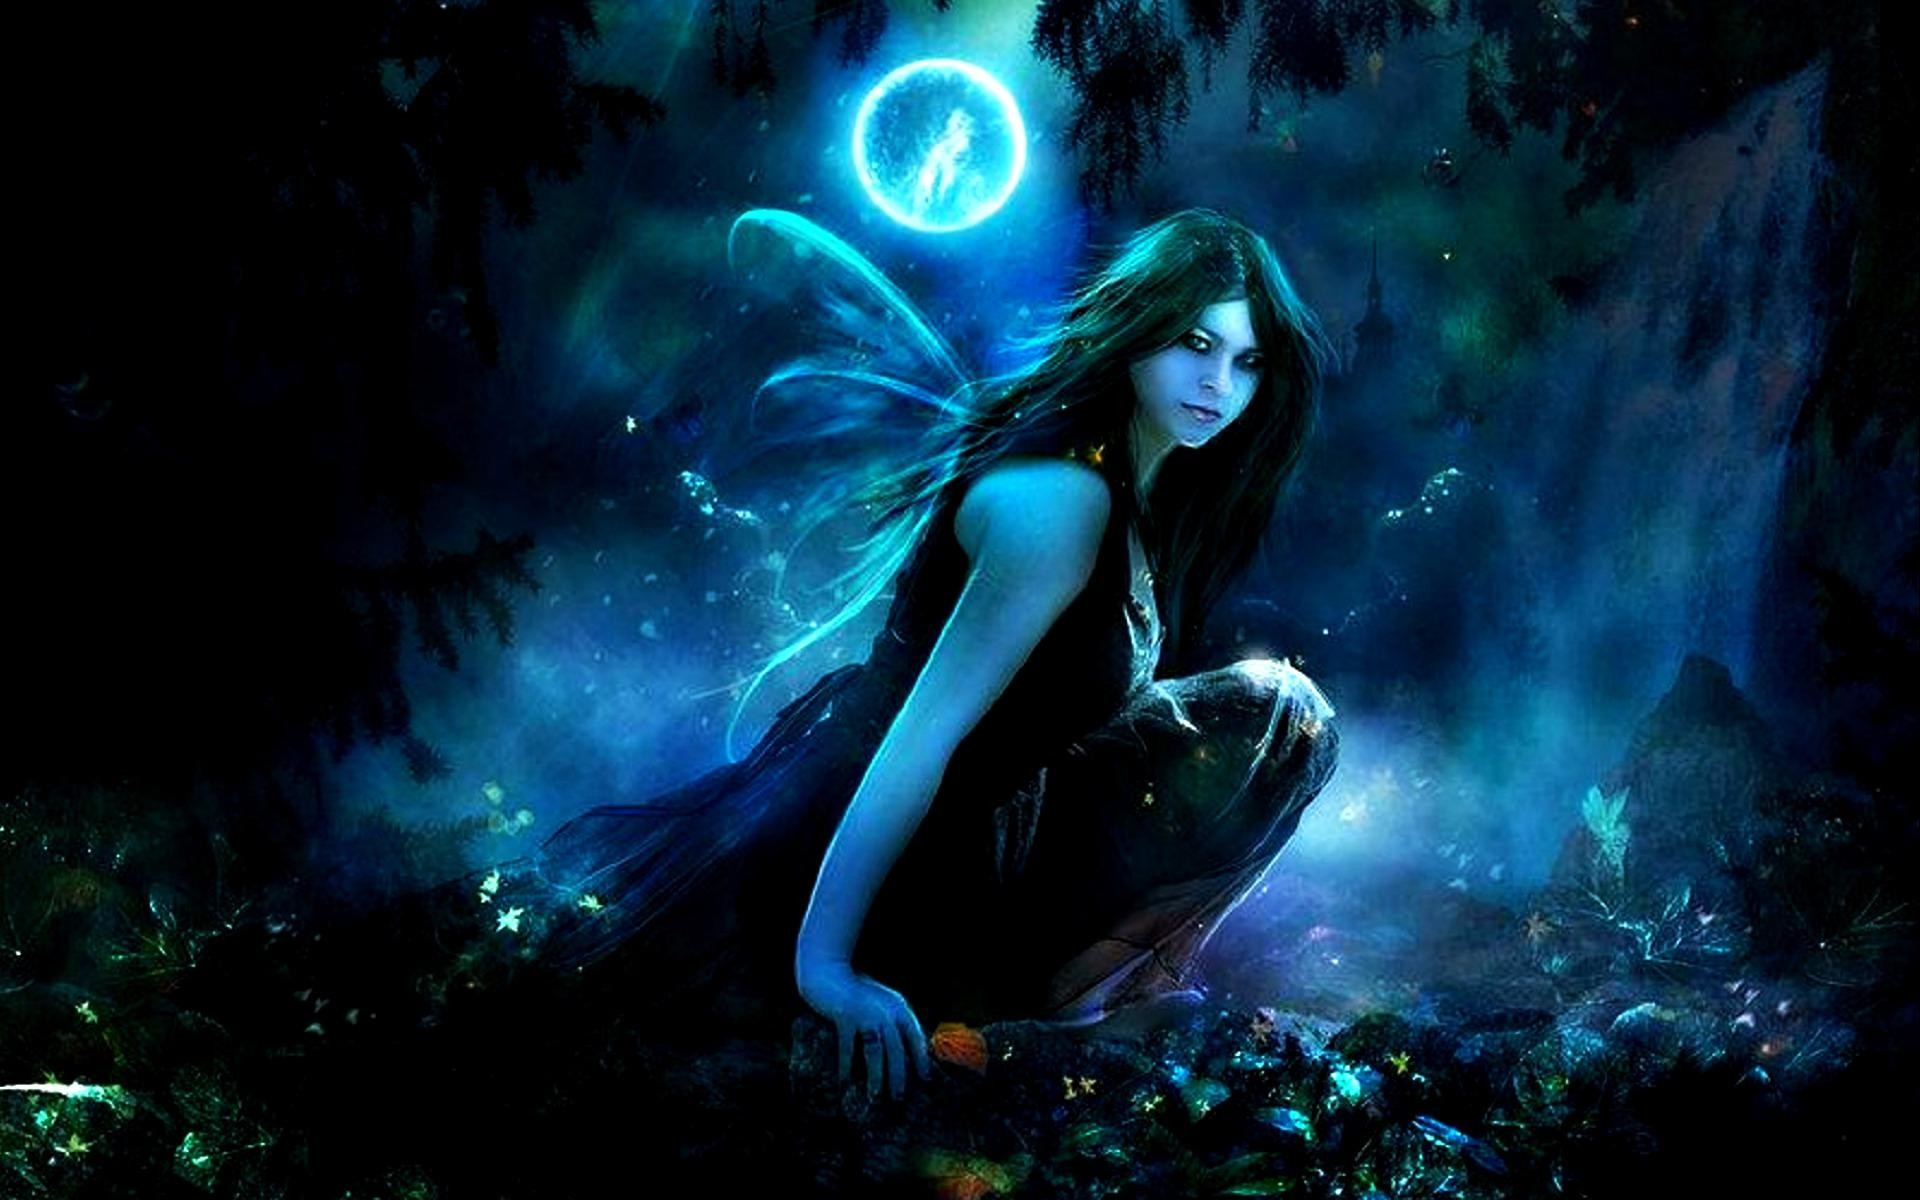 A Collection Of Dark Mysterious Hd Fantasy Wallpapers: Animated Fairy Wallpaper (57+ Images